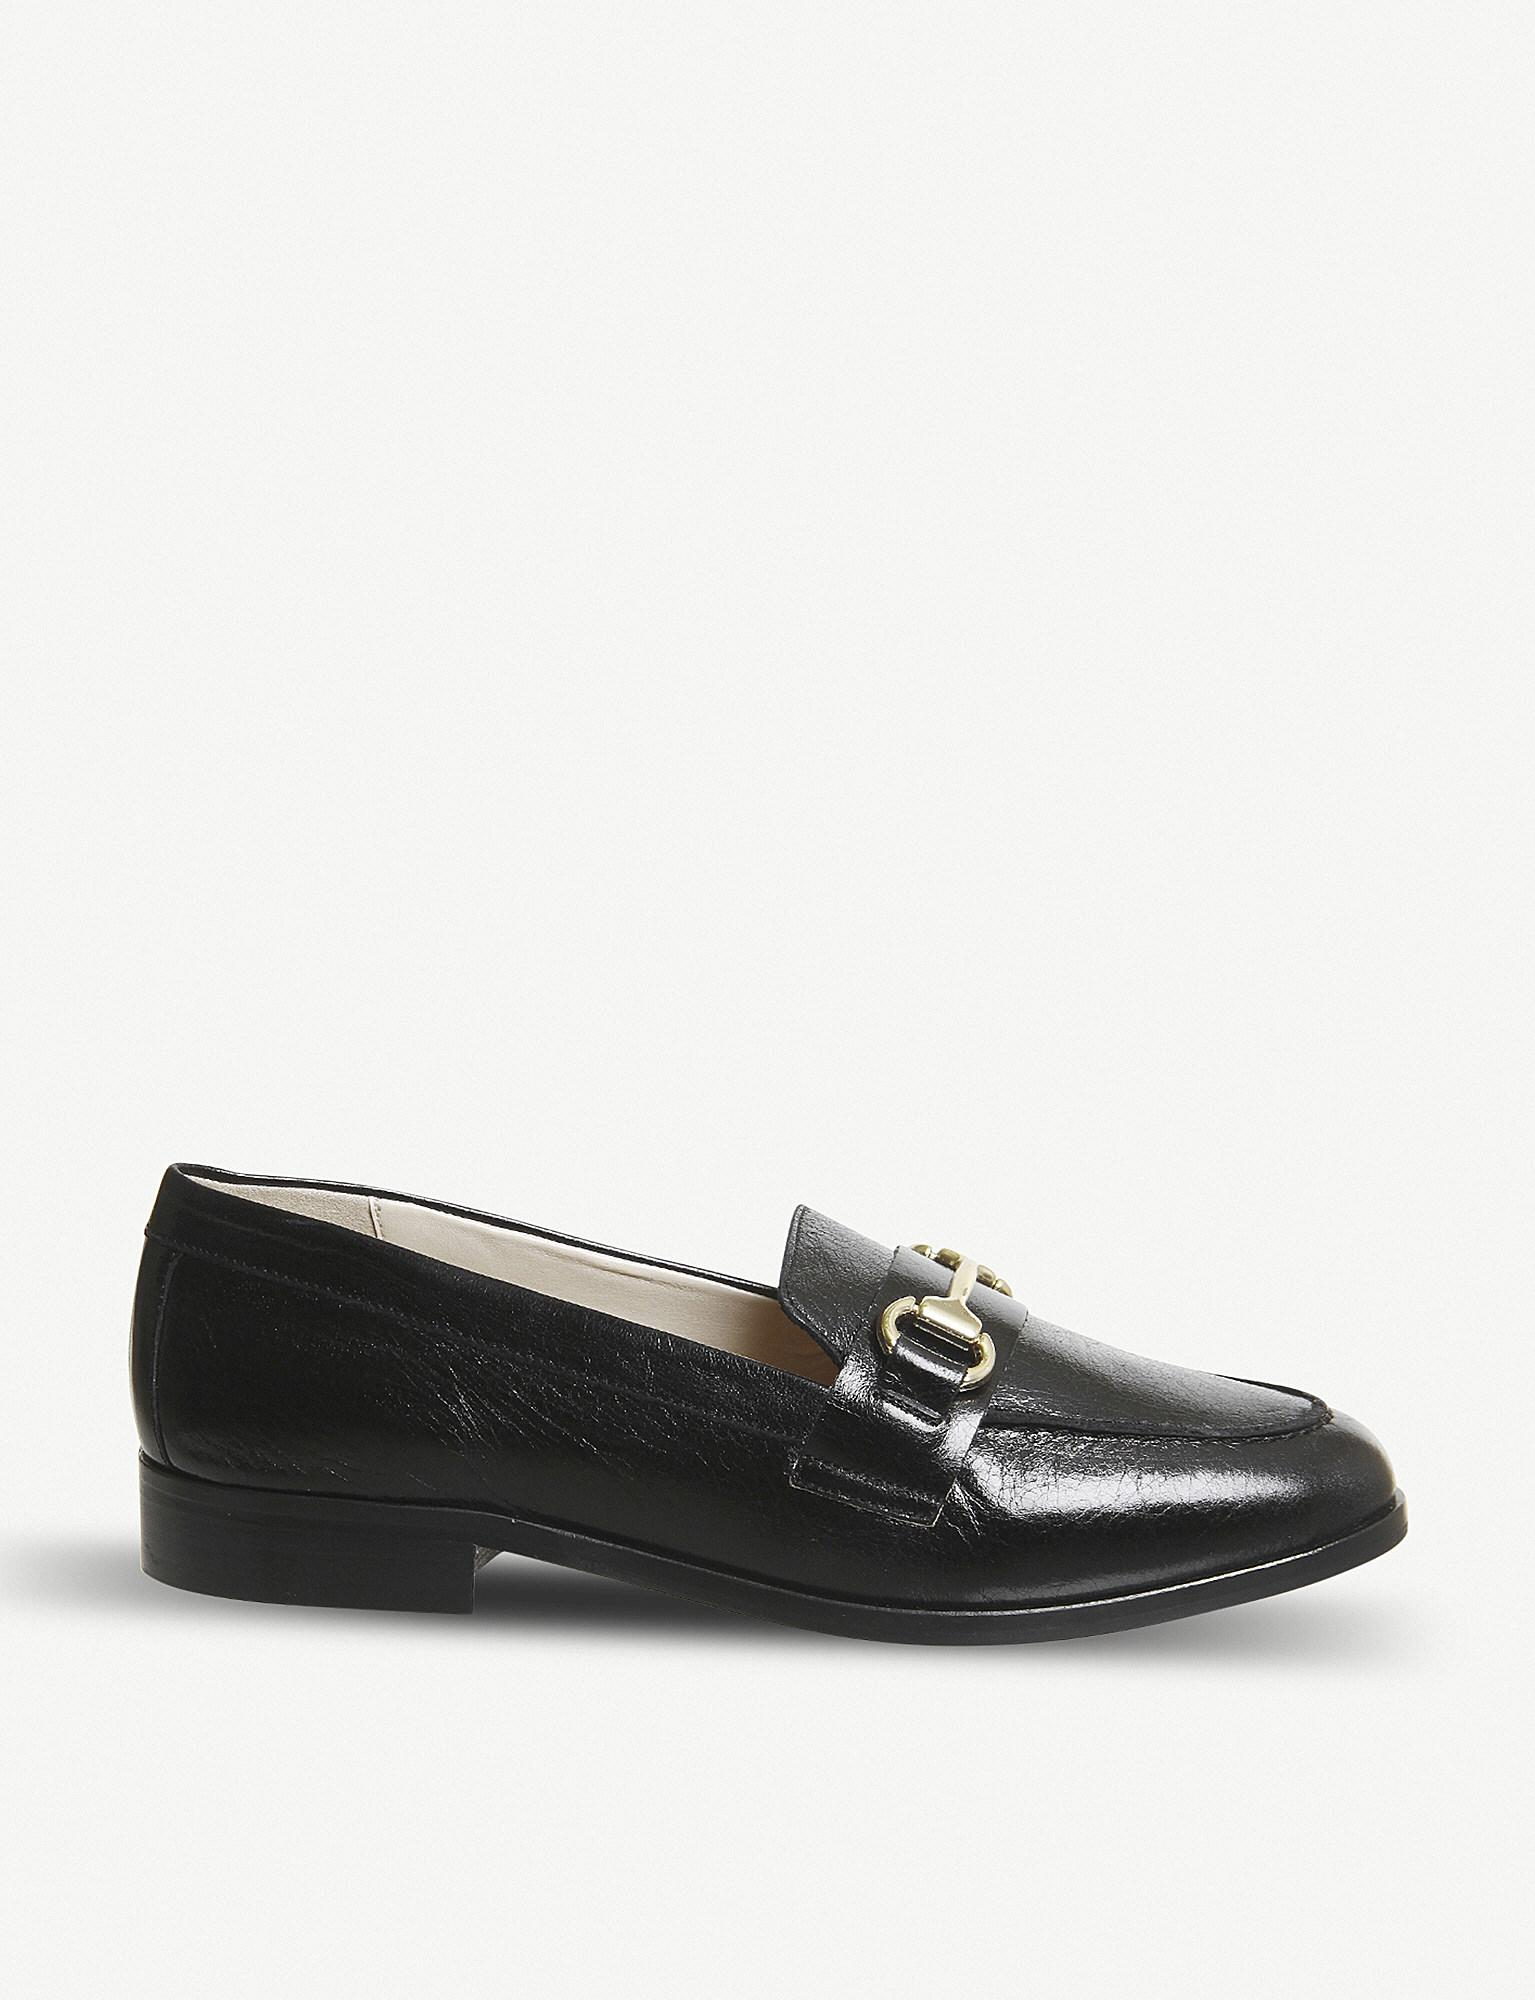 f99761f9a2a Lyst - Office Fluster Leather Loafers in Black